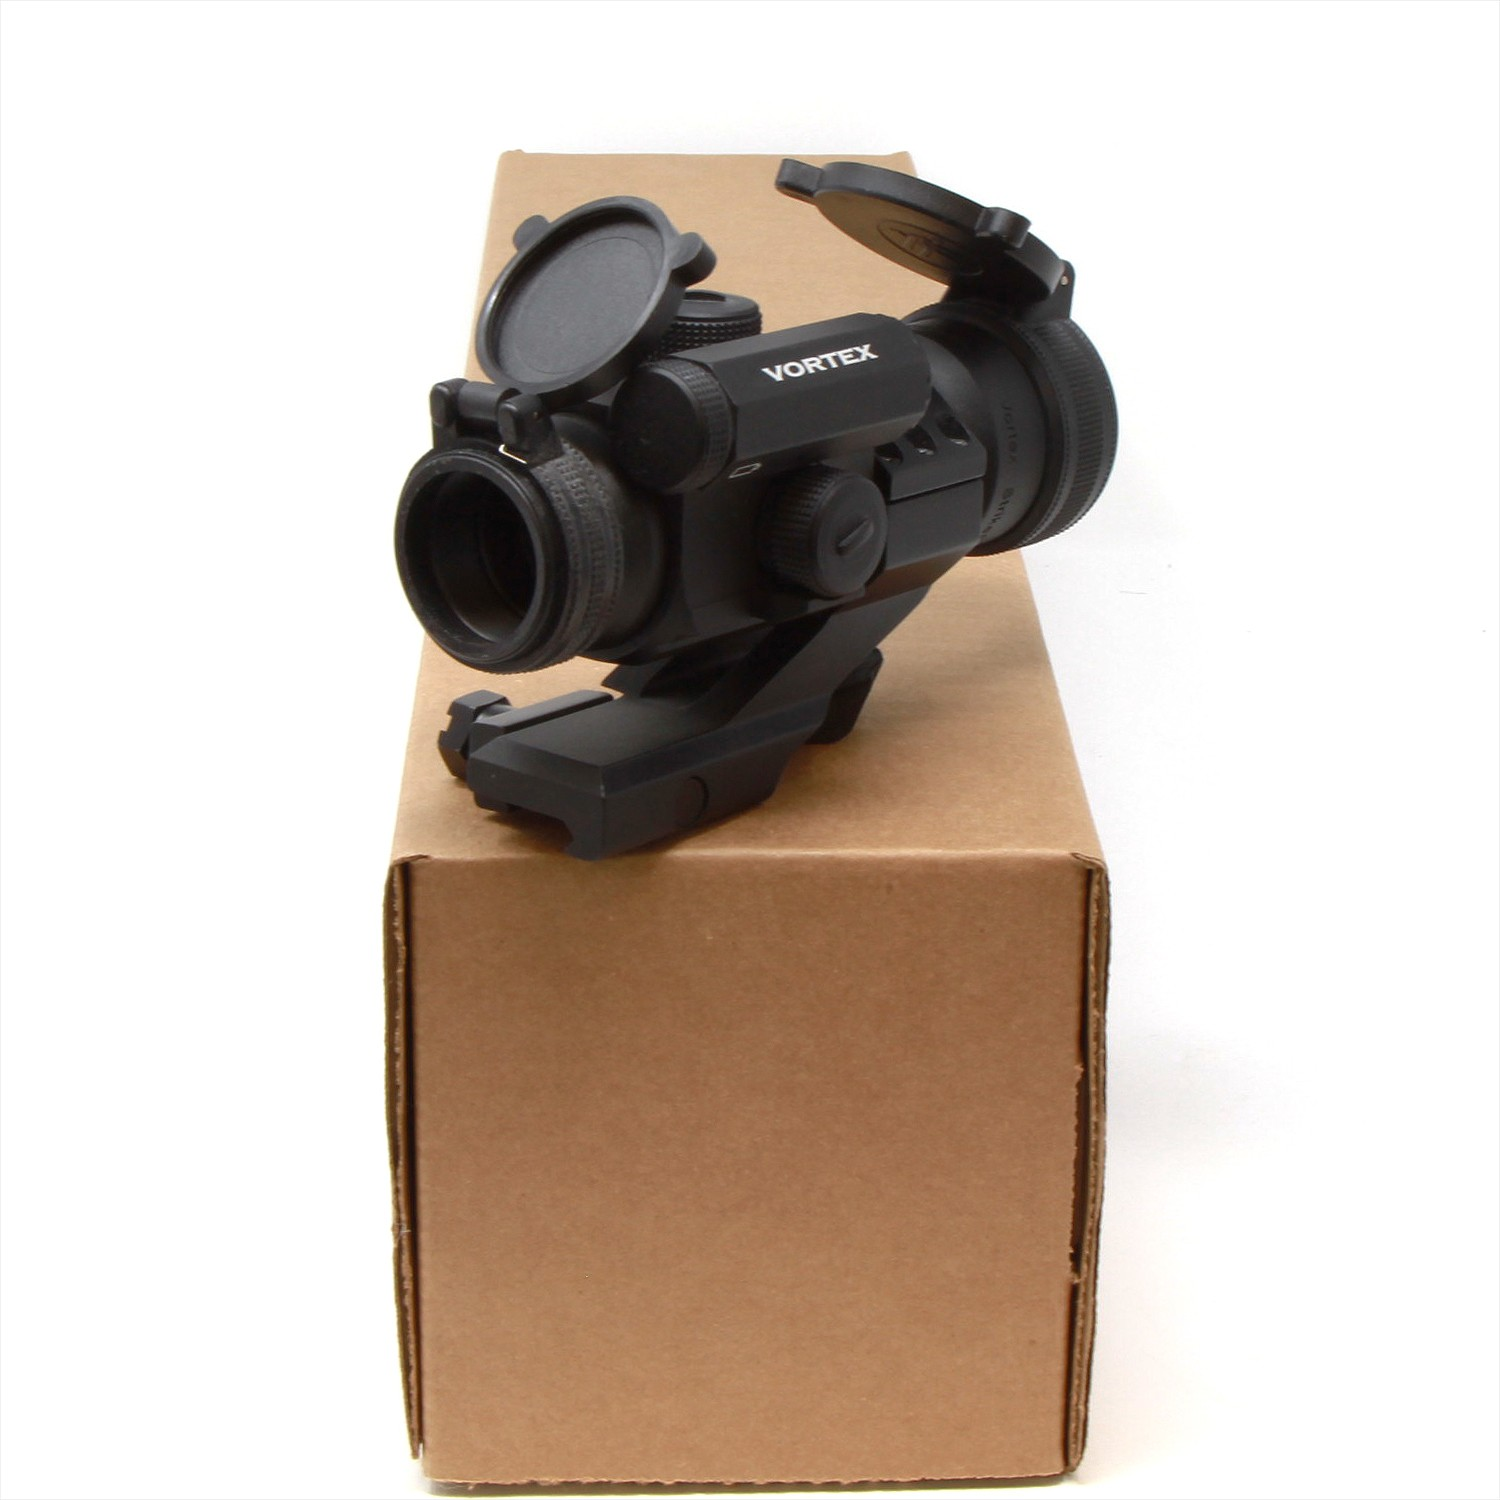 Vortex 1x StrikeFire II Red/Green Dot Sight DEMO-B